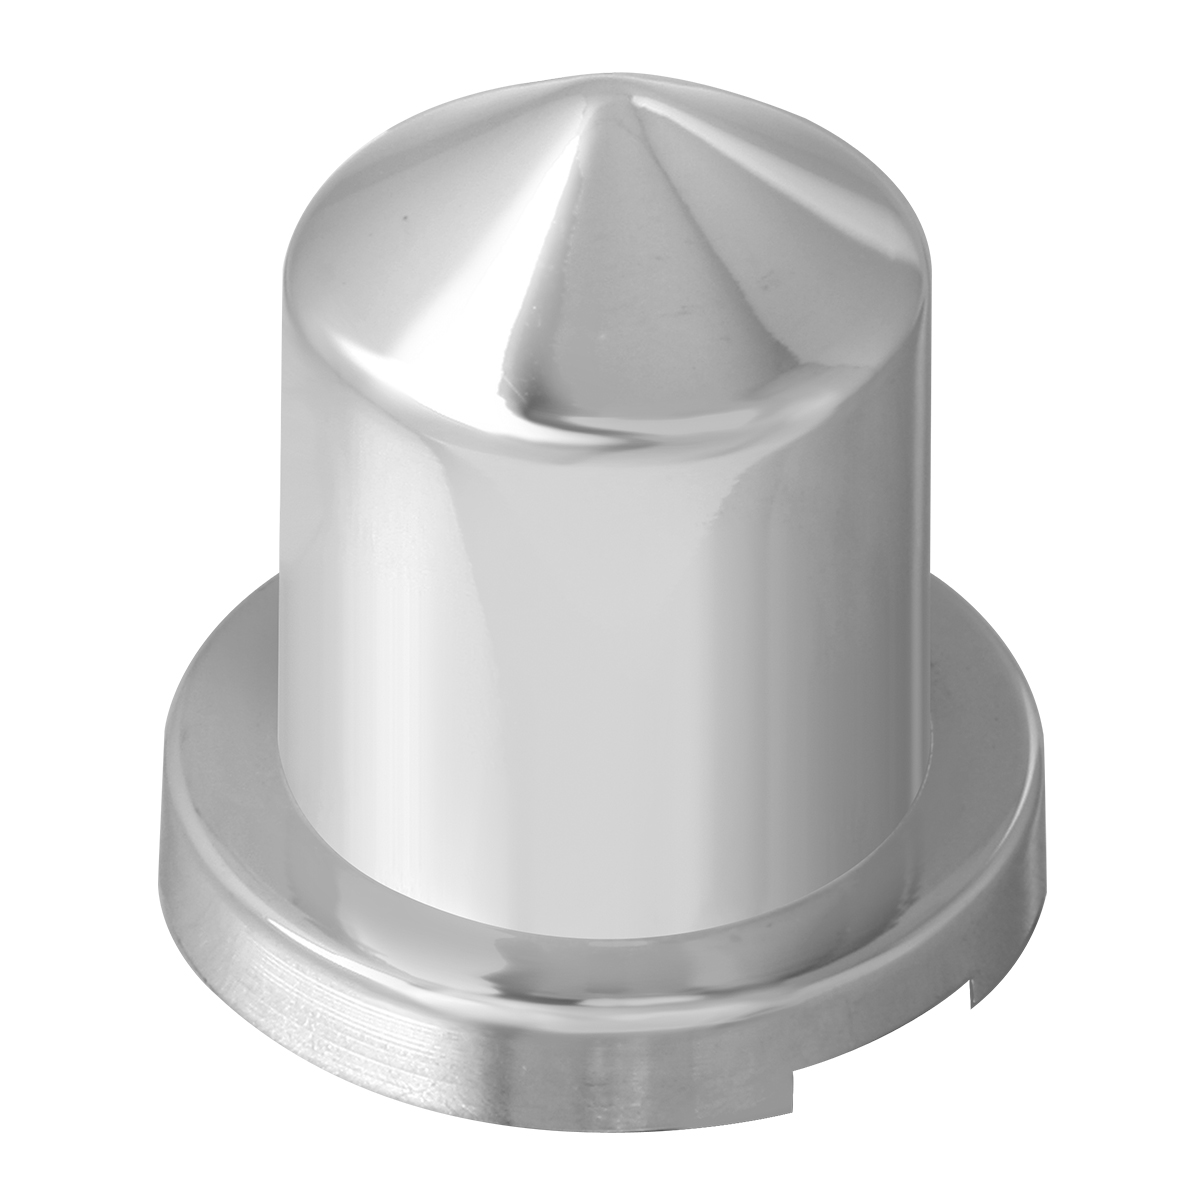 "10131 Chrome Plastic 5/8"" Side Step Nut Cover"